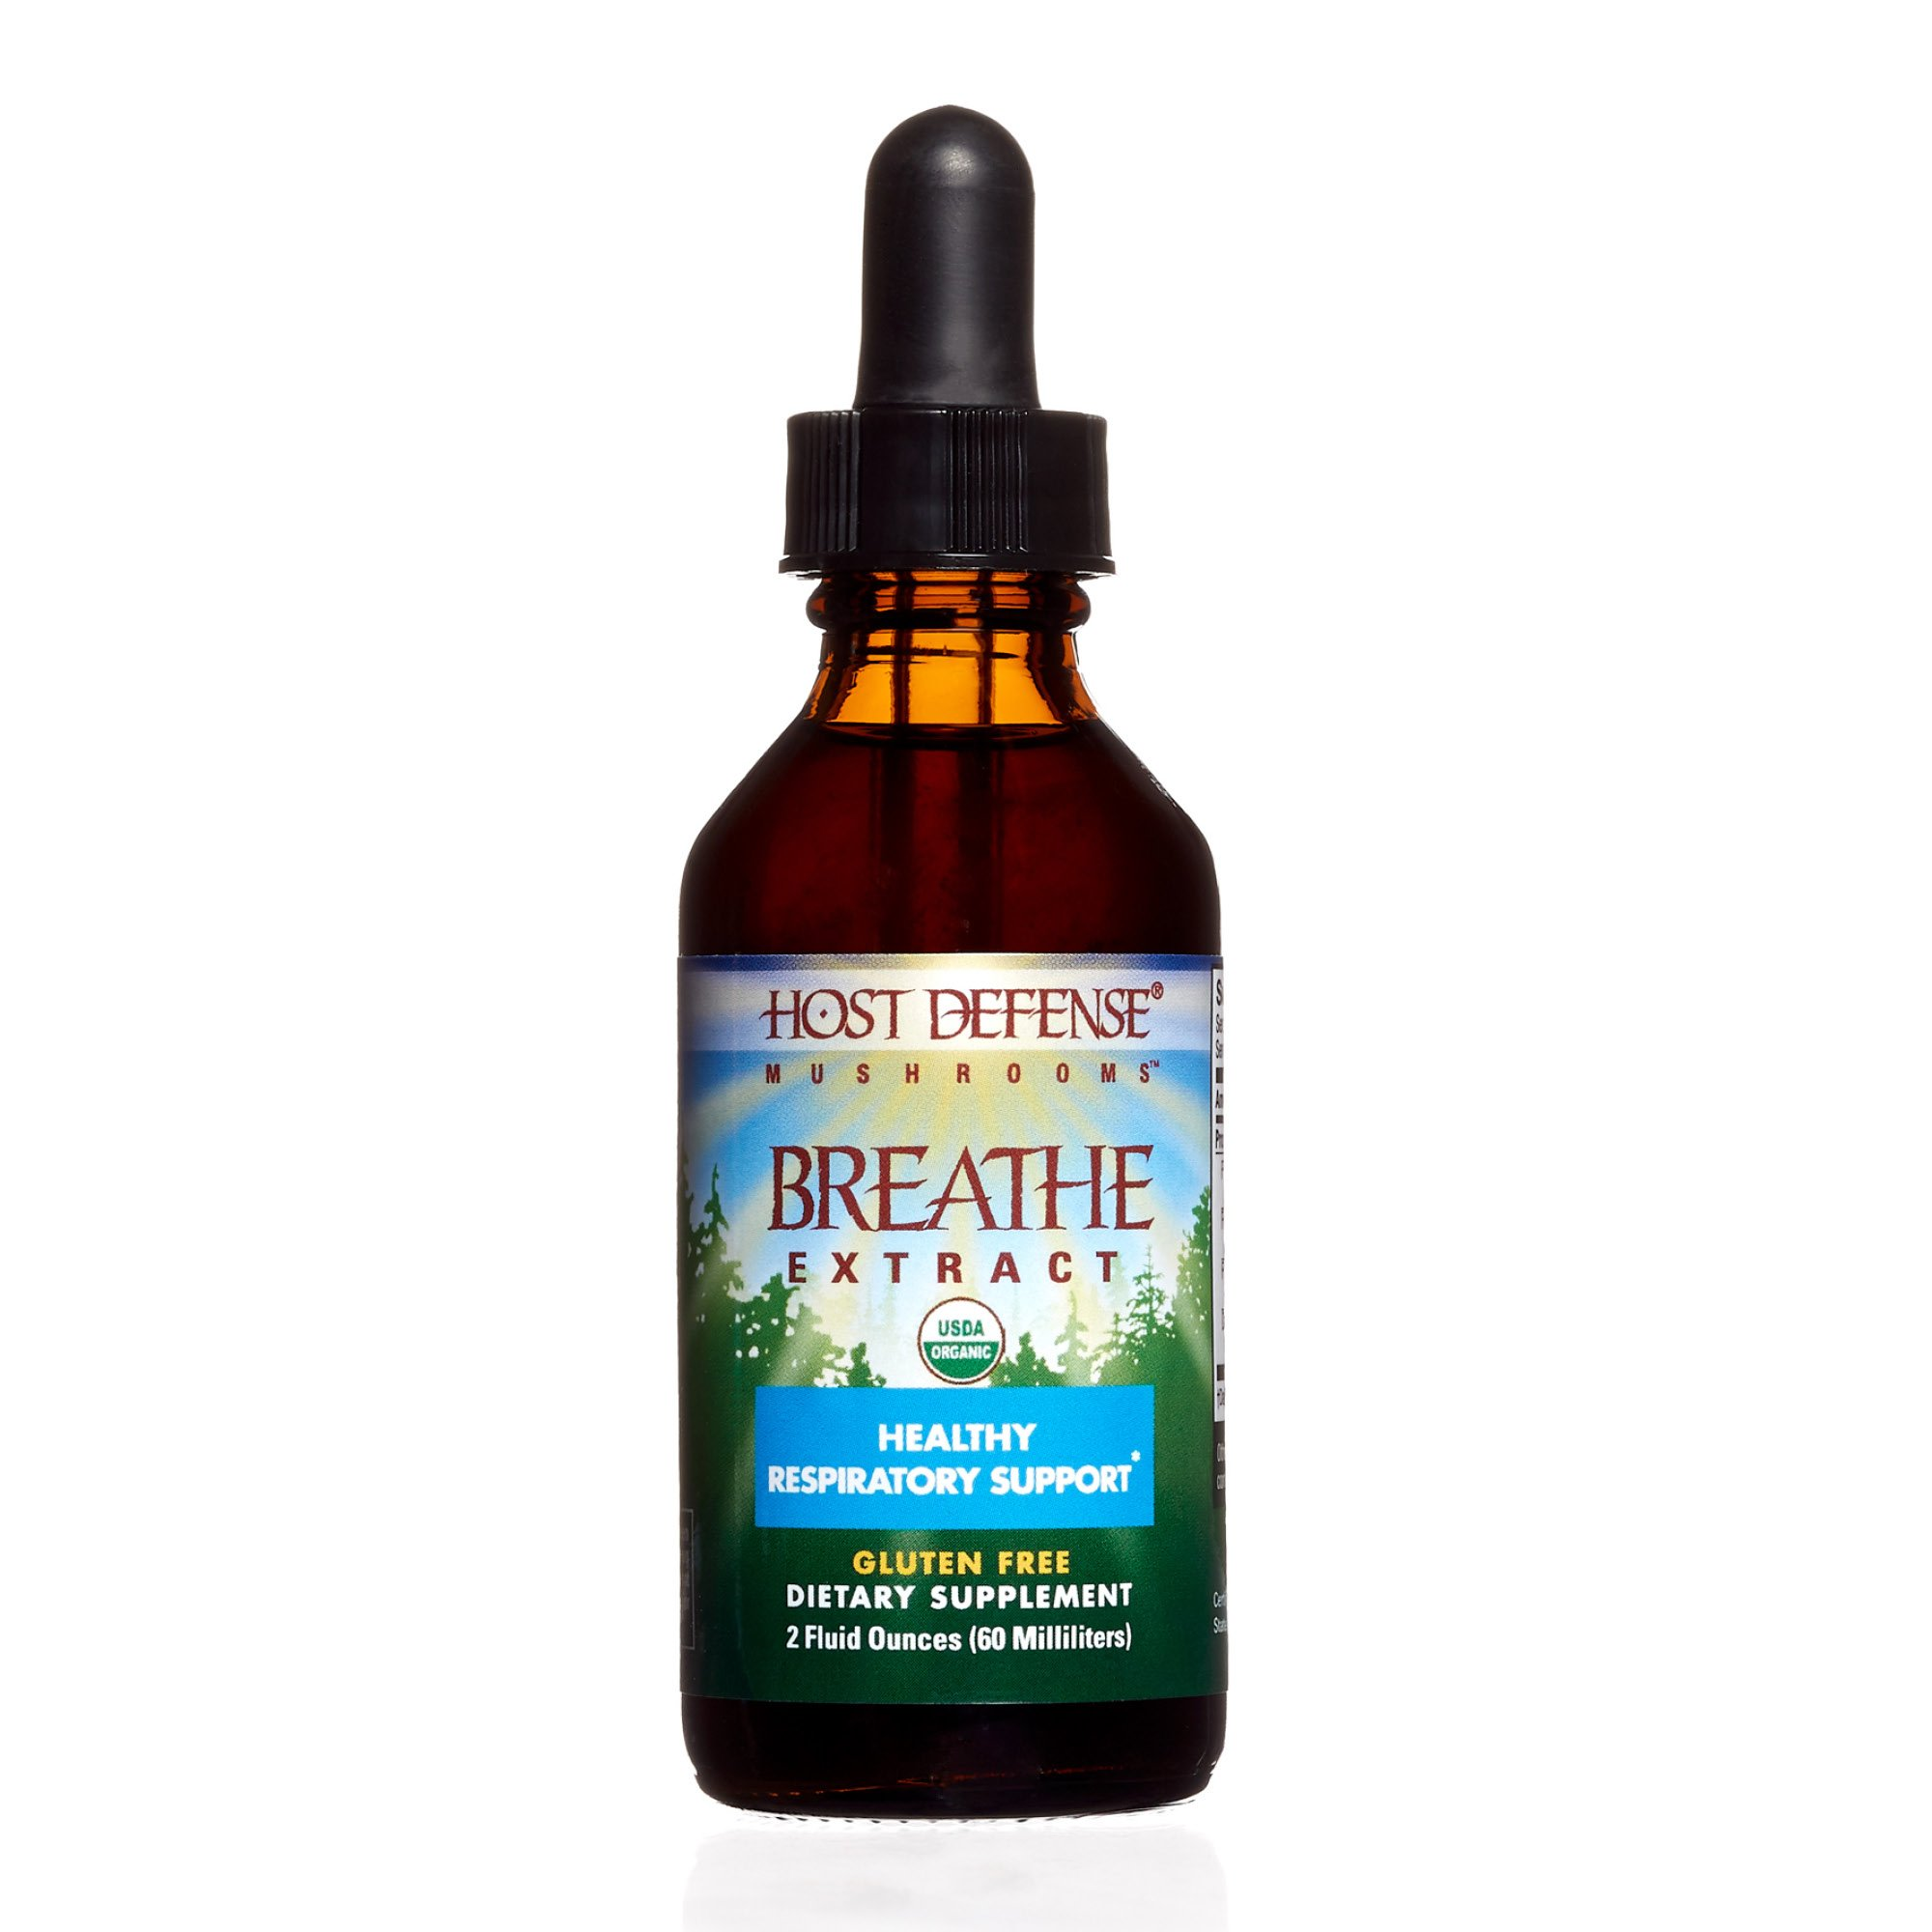 Host Defense - Breathe Multi Mushroom Extract, Support for Energy, Easy Respiration, and Immunity in The Lungs, Non-GMO, Vegan, Organic, 60 Servings (2 Ounces)